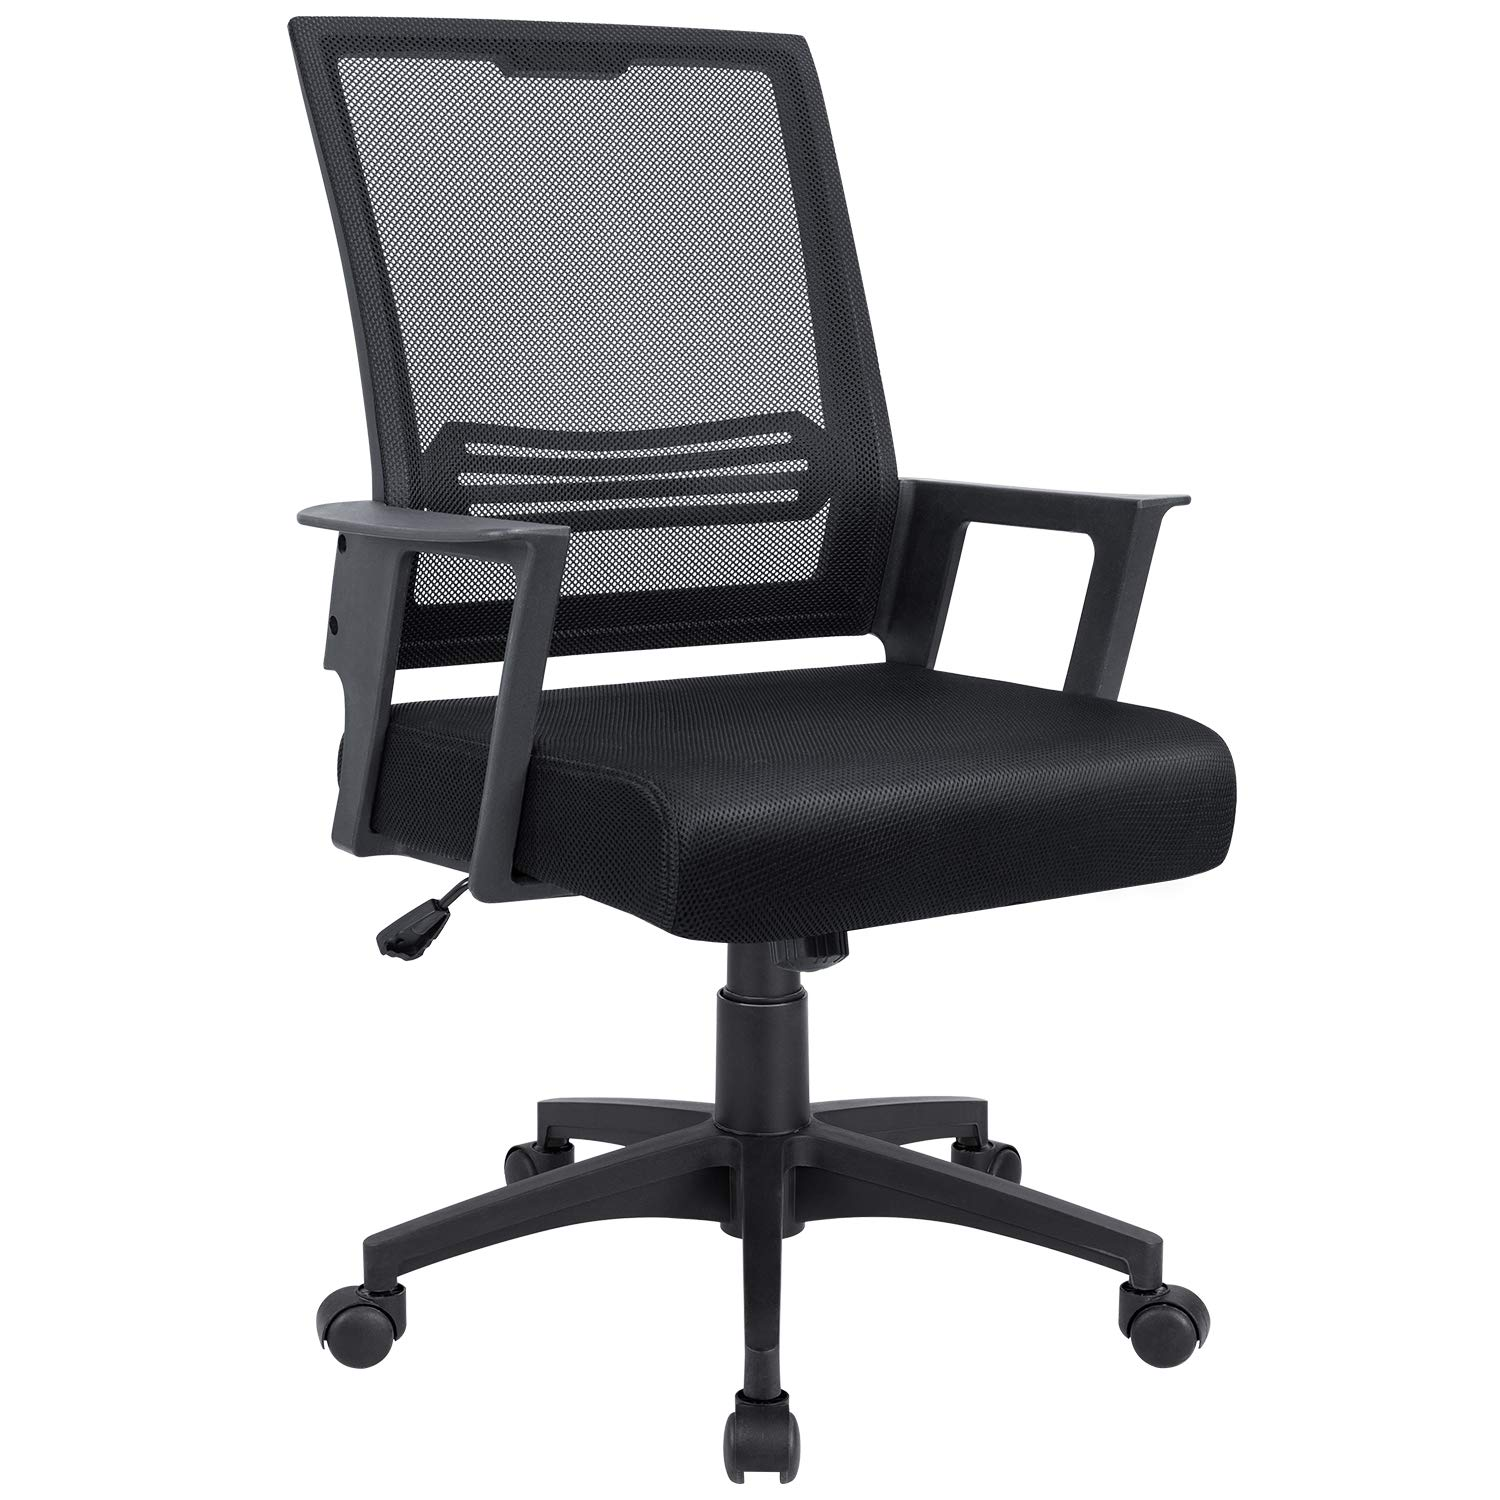 JUMMICO Office Chair Mid Back Swivel Desk Chair Ergonomic Executive Adjustable Mesh Chair with Armrest and Lumbar Support (Black)